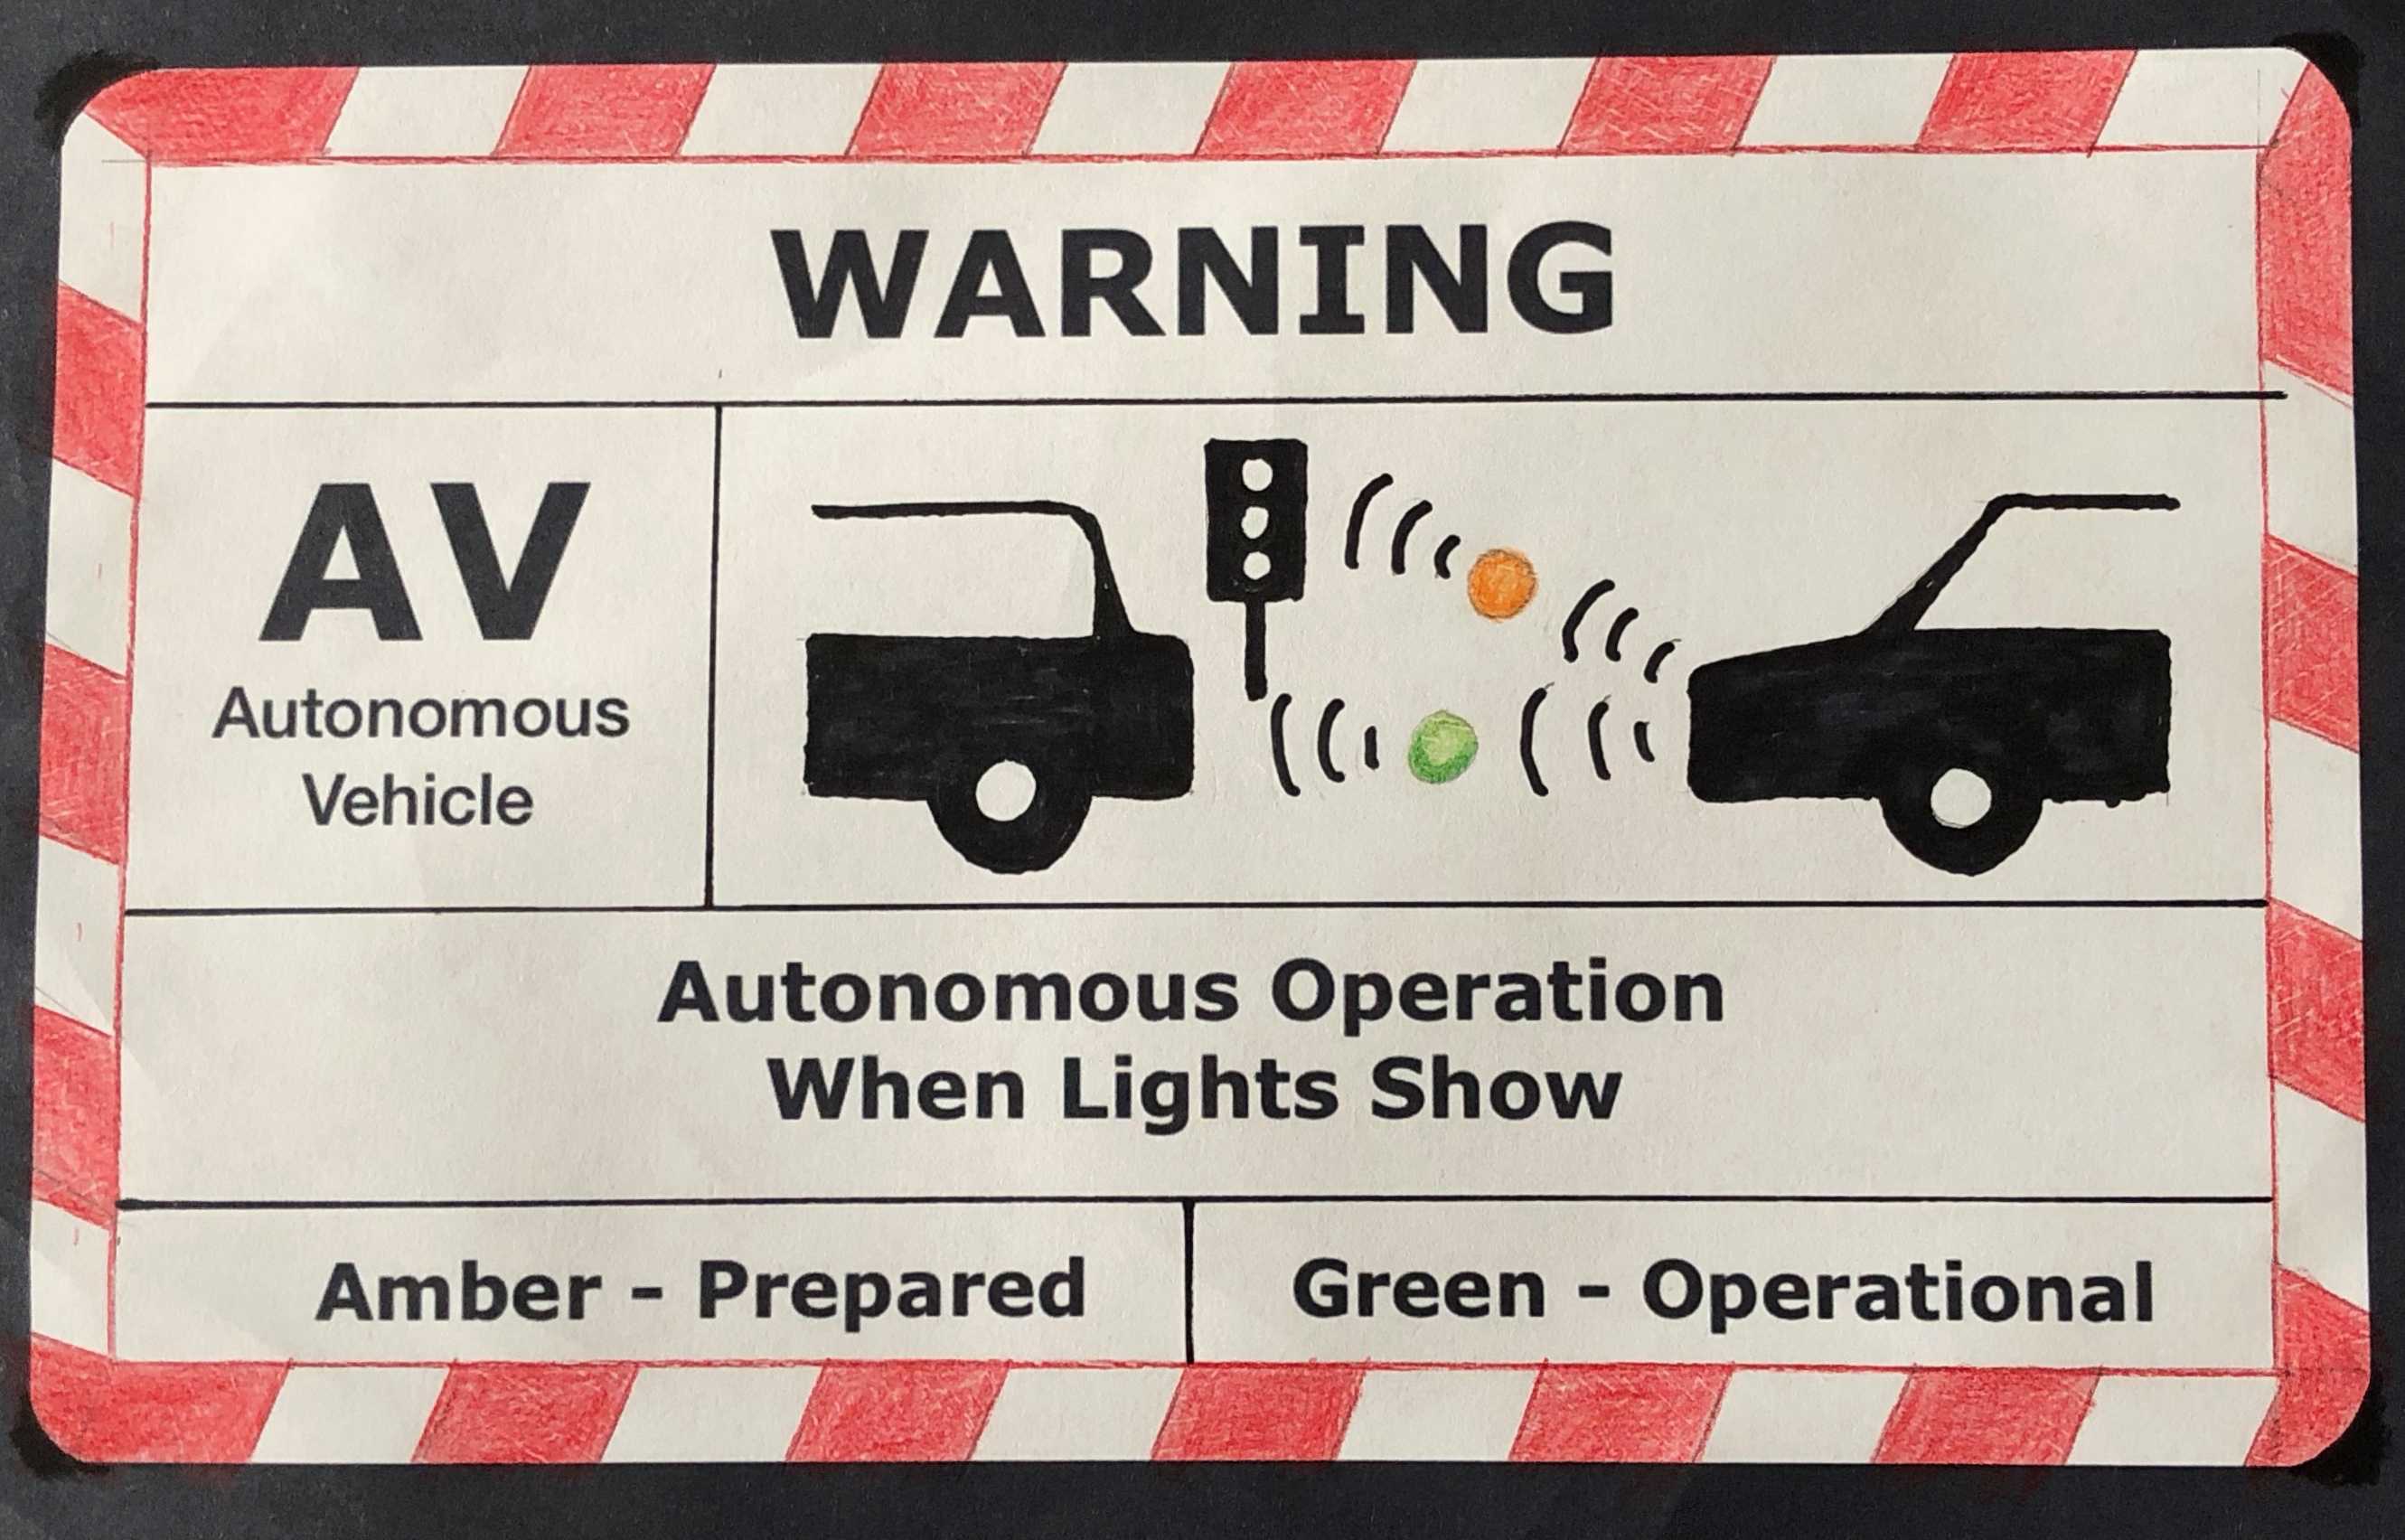 A mock up of a potential plate to be attached to the rear of a vehicle. In white with a red and white chevron border and the word Warning at the top. In the centre a large AV above the words Autonomous Vehicle. A graphic showing the gap between a rear and front of a vehicle shows brackets indicating a radio connection between the cars and a traffic light, interupted by an amber or green lamp. Below words explain Autonomous Operation When Lights Show and an indication that Amber means Prepared and Green means Operational